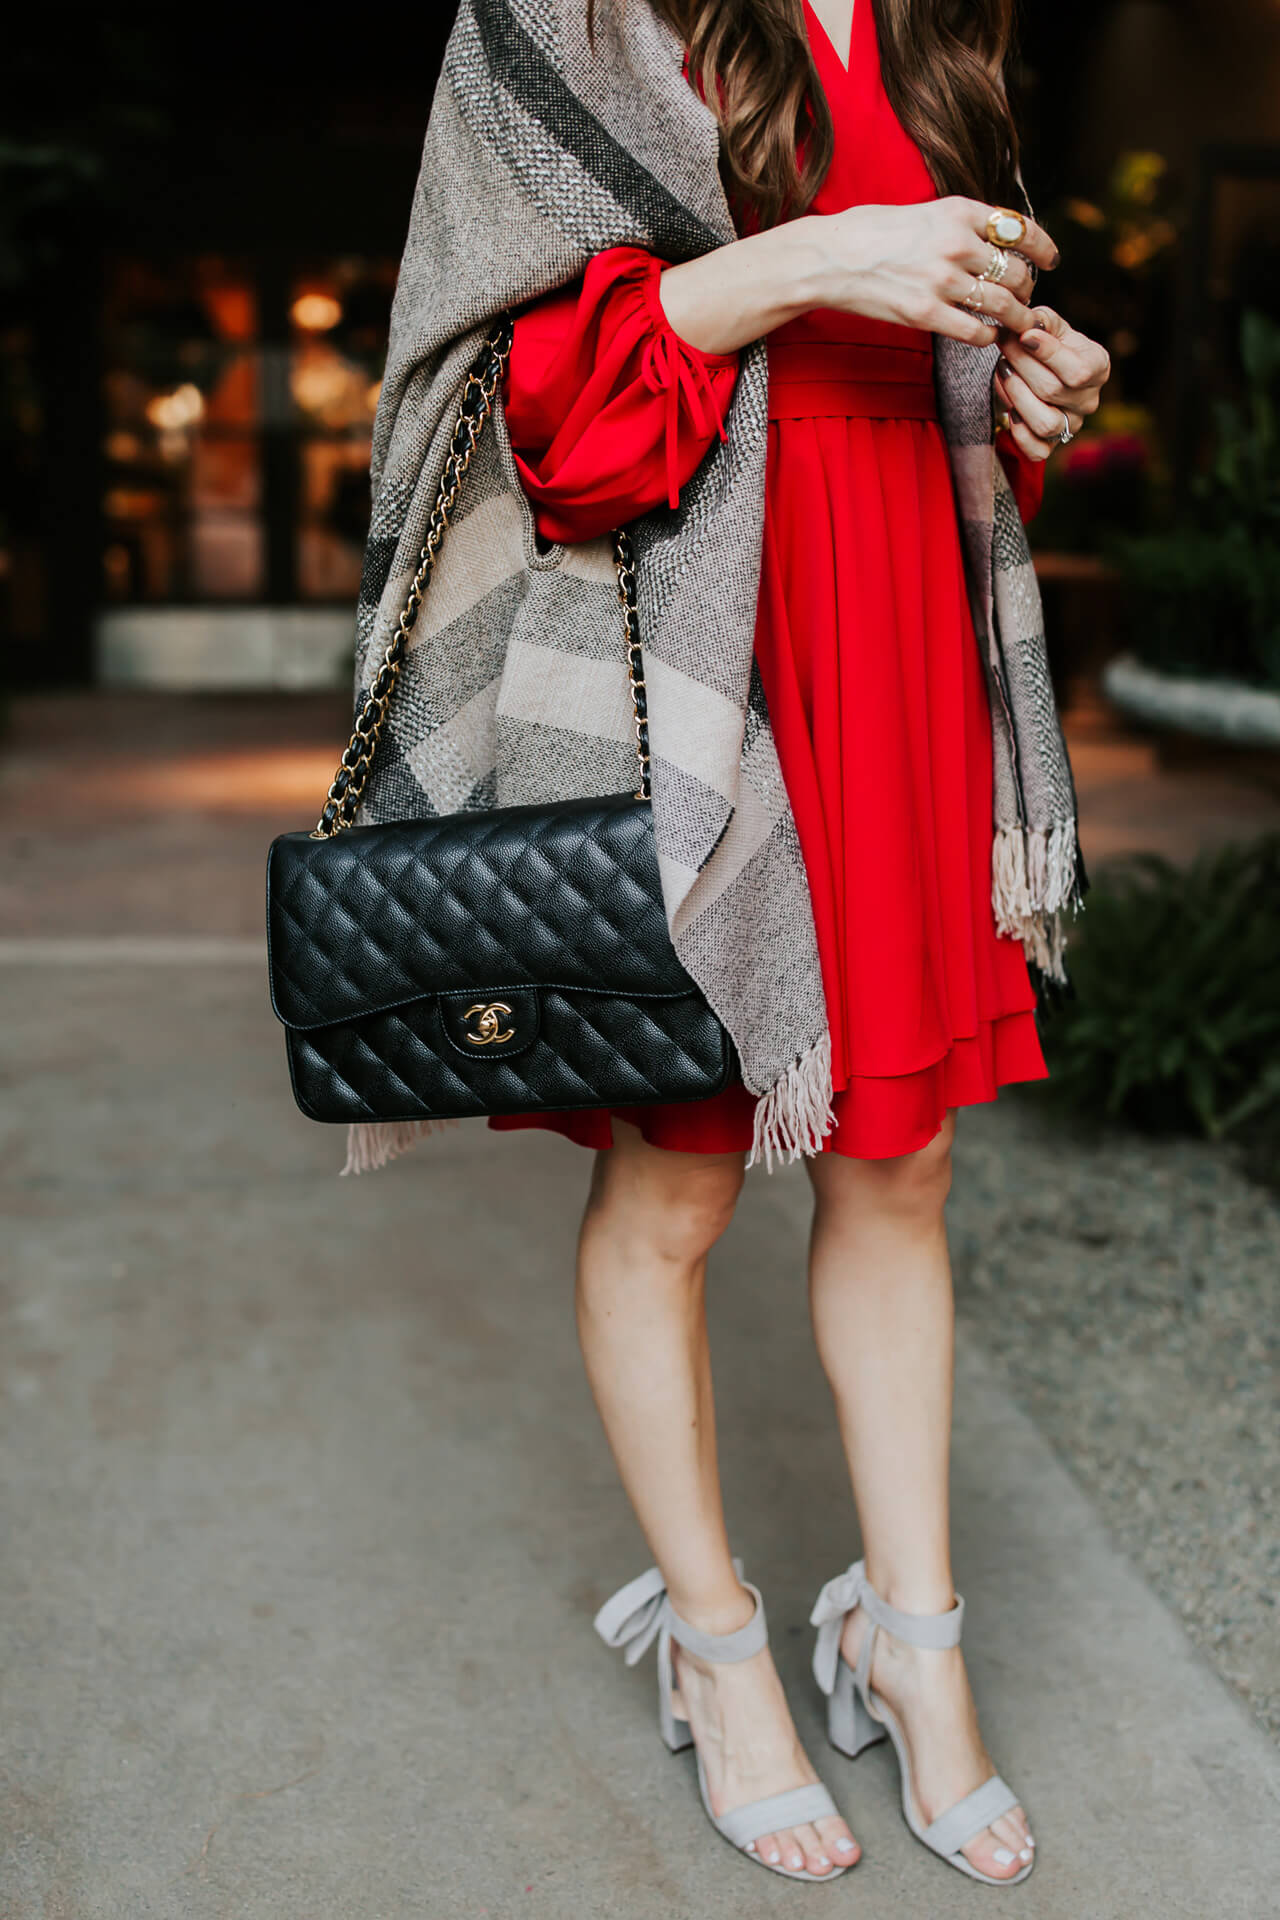 Toning down this bright dress with a black bag and neutral poncho